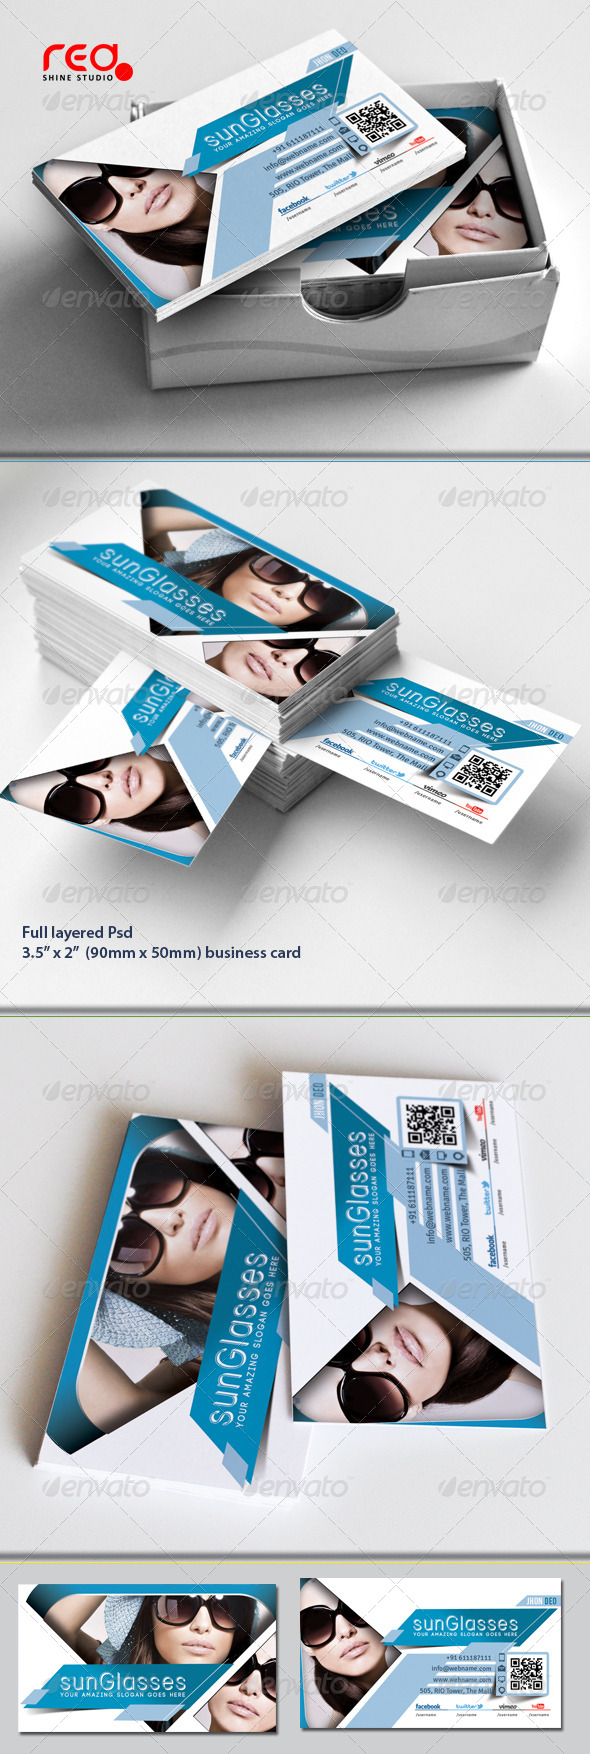 SunGlasses Fashion Store Business Card Set - Industry Specific Business Cards